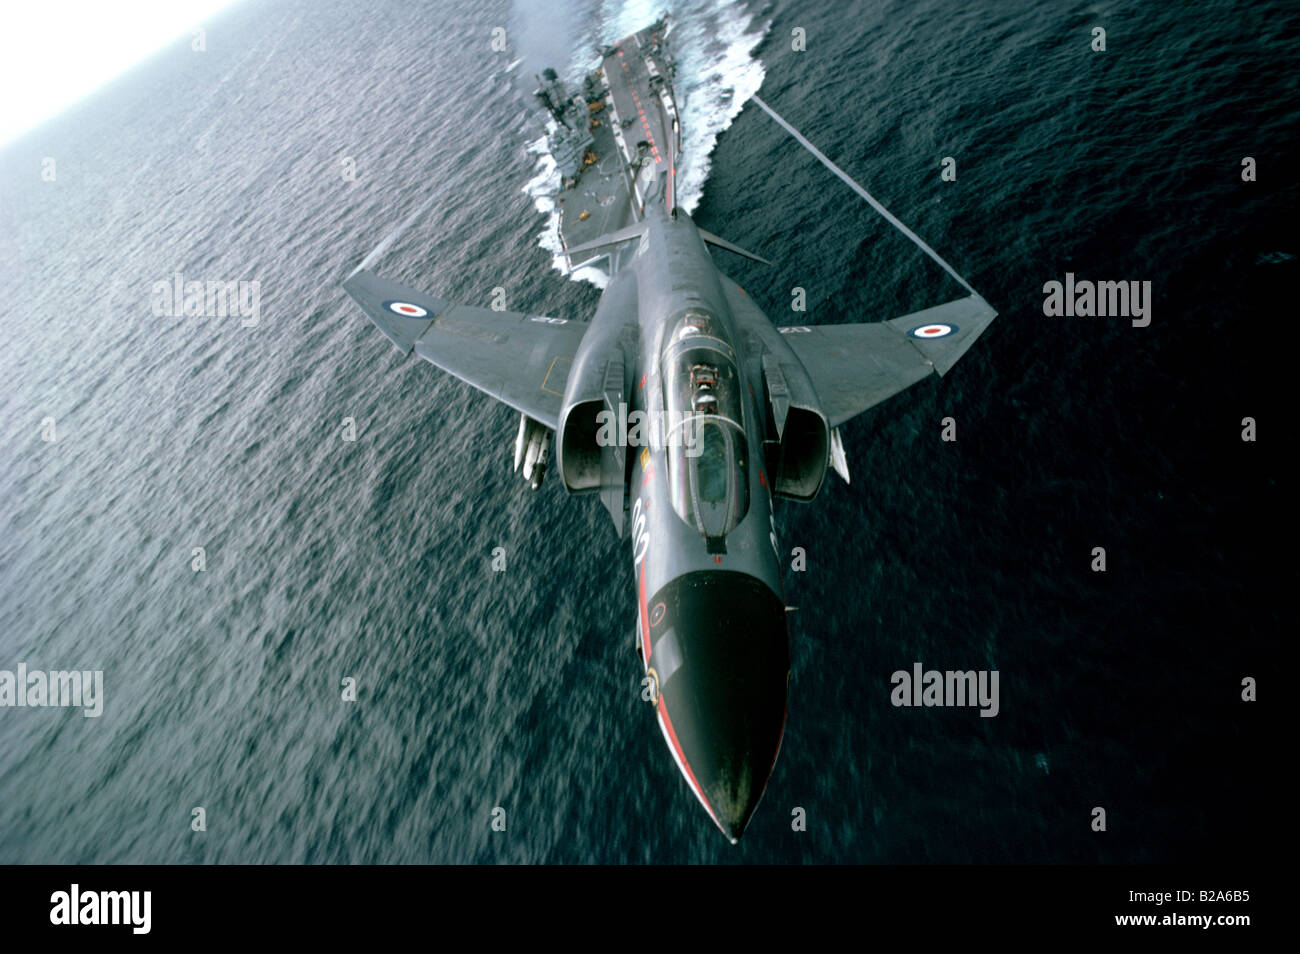 Phantom F4 jet aircraft with aircraft carrier in background - Stock Image